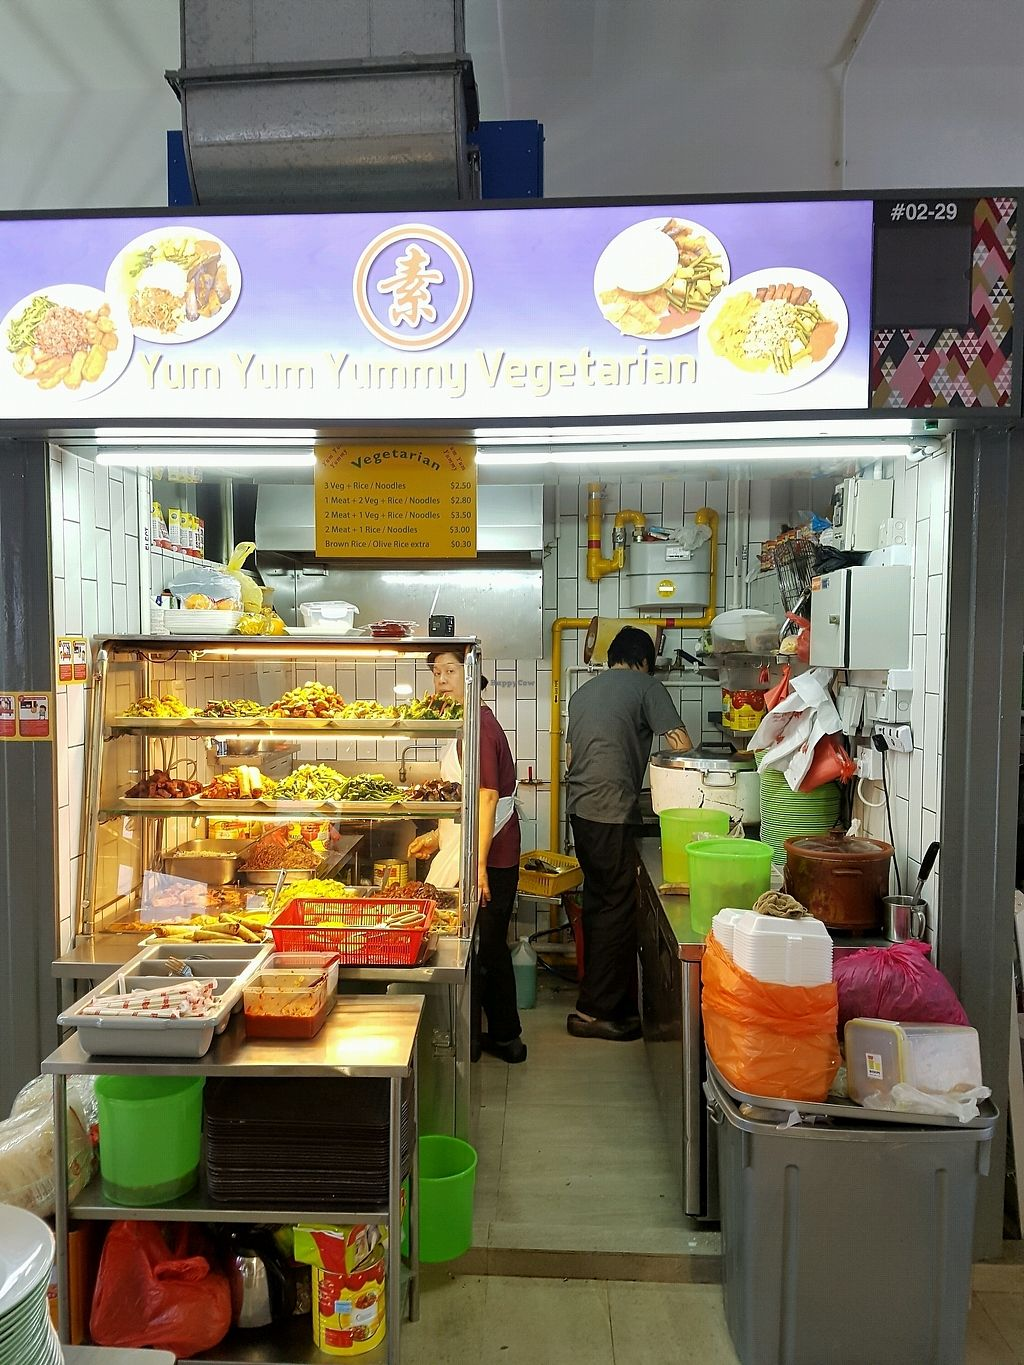 "Photo of Yum Yum Yummy Vegetarian - Bukit Merah Central  by <a href=""/members/profile/cleomy"">cleomy</a> <br/>Stall #02-29 <br/> February 13, 2018  - <a href='/contact/abuse/image/111713/358625'>Report</a>"